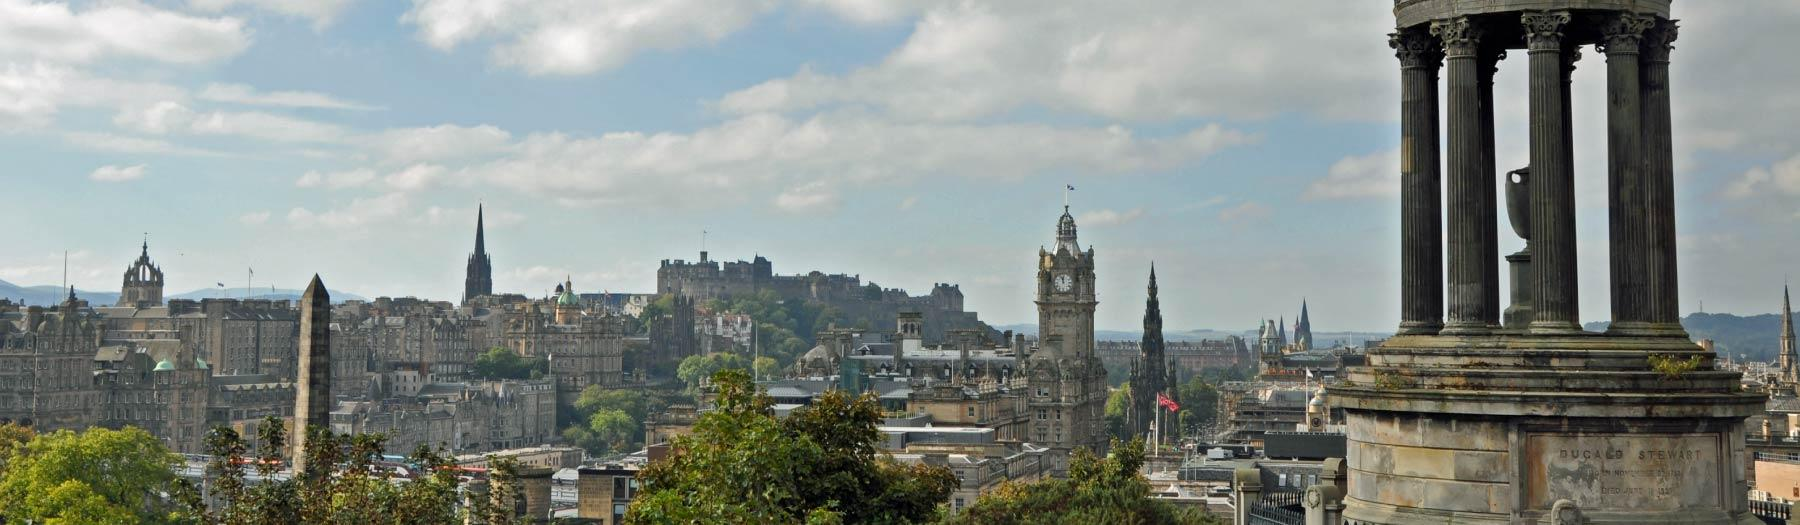 Image: Edinburgh skyline. Credit: Marketing Edinburgh.